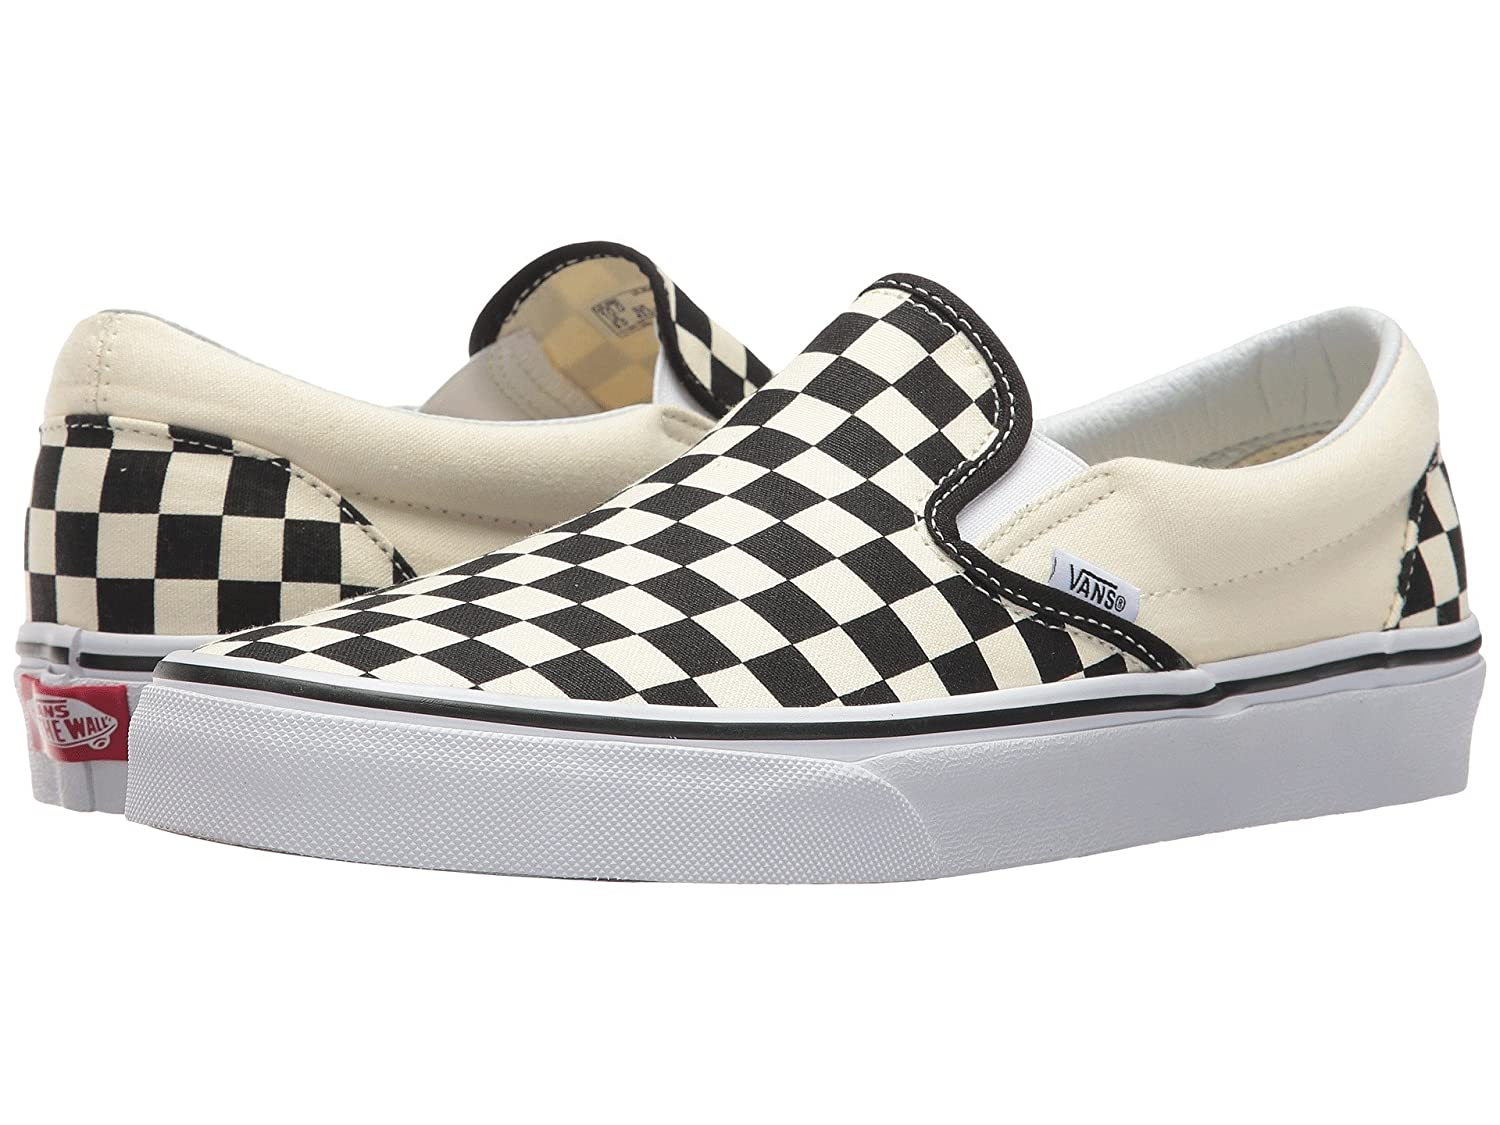 Vans Unisex Classic (Checkerboard) Slip-On Skate Shoe B07541WLD8 5.5 B(M) US Women / 4 D(M) US Men|Black/White Checkerboard